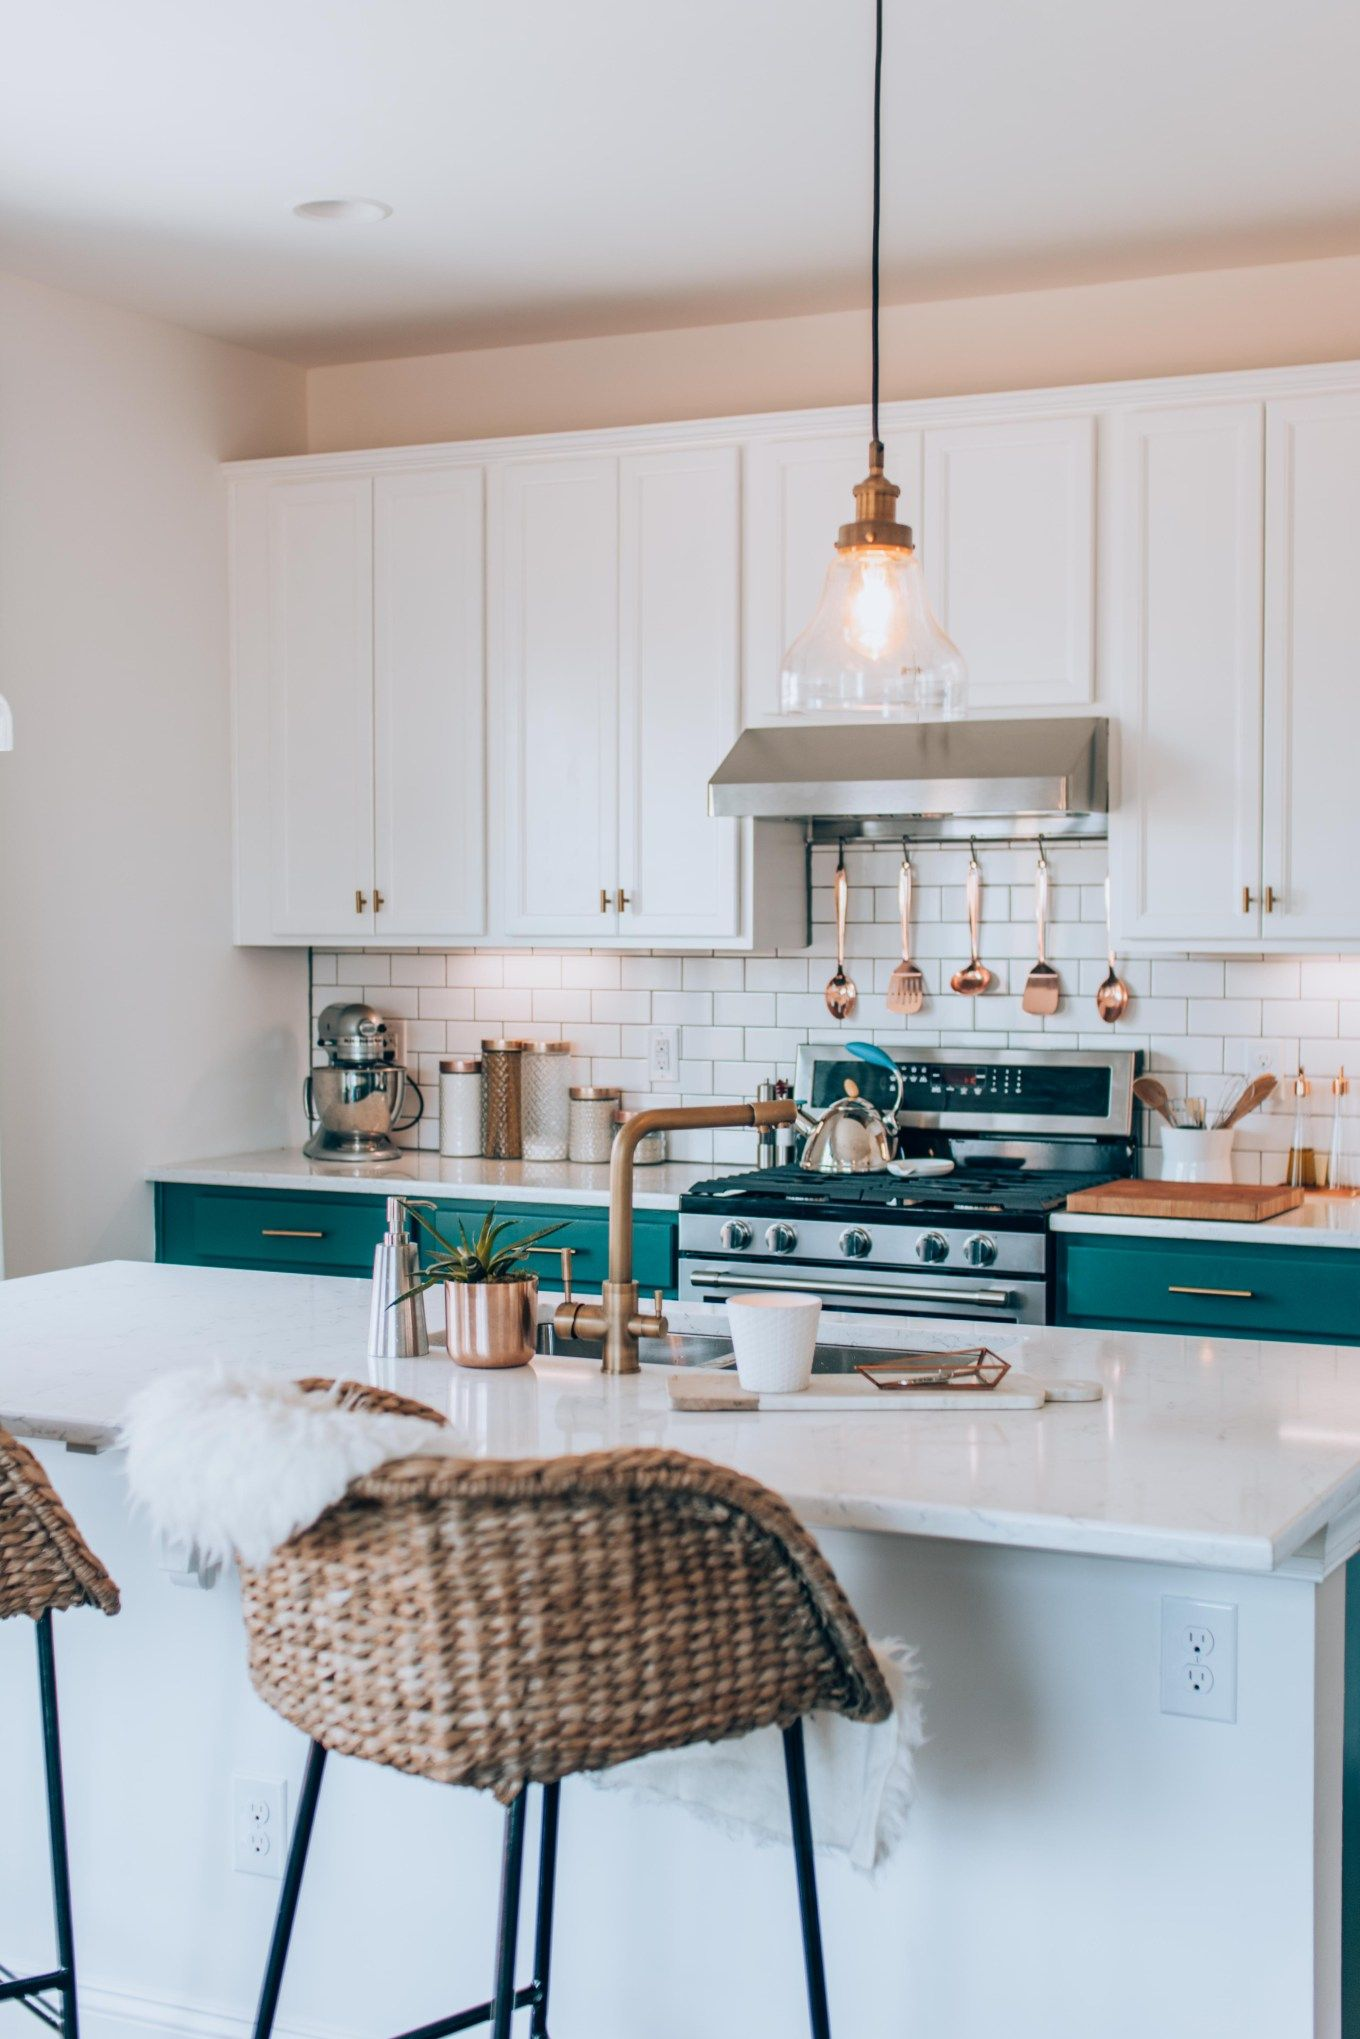 Before & After A Nice Kitchen Gets Unbelievably Better